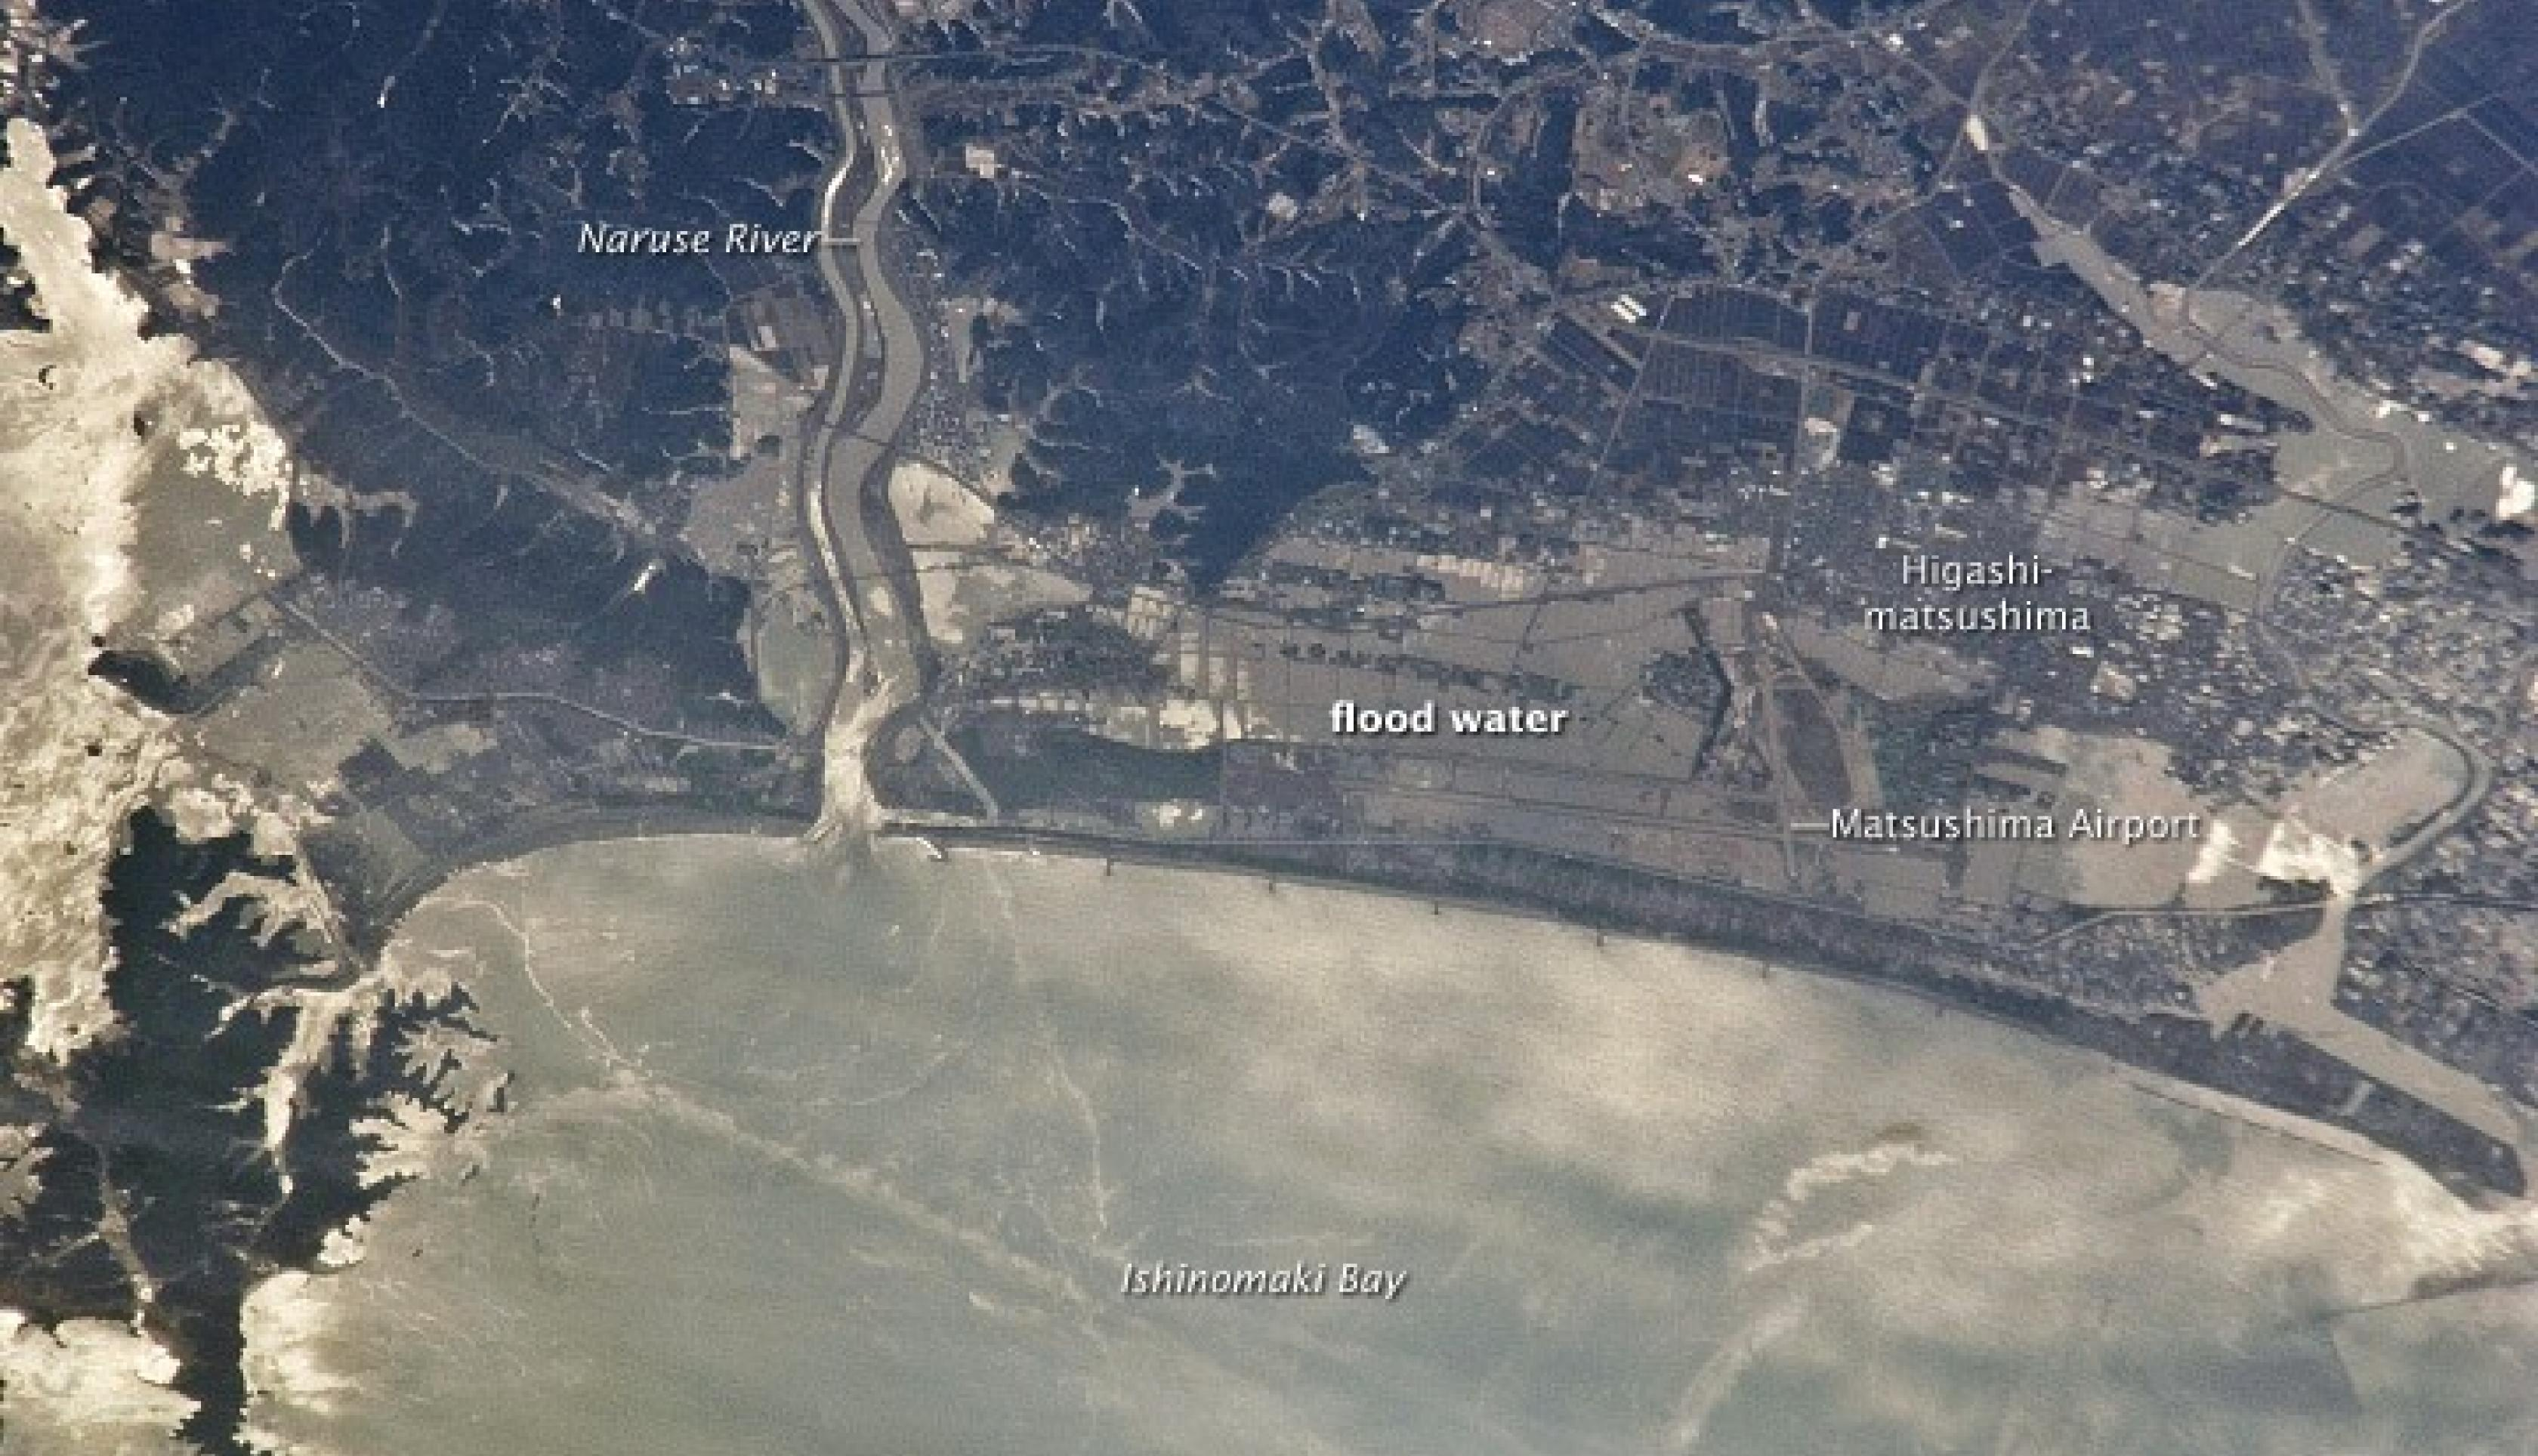 On Mar. 11, 2011, the eastern coast of Japan was shaken by the magnitude 9.0 Tohoku earthquake - one of the strongest earthquakes ever recorded. This photo, taken from the International Space Station on Mar. 13, 2011, shows the Japanese coastline north and east of Sendai following inundation by a tsunami. Sunglint indicates the widespread presence of floodwaters and indicates oils and other materials on the water surface.. Credit: NASA